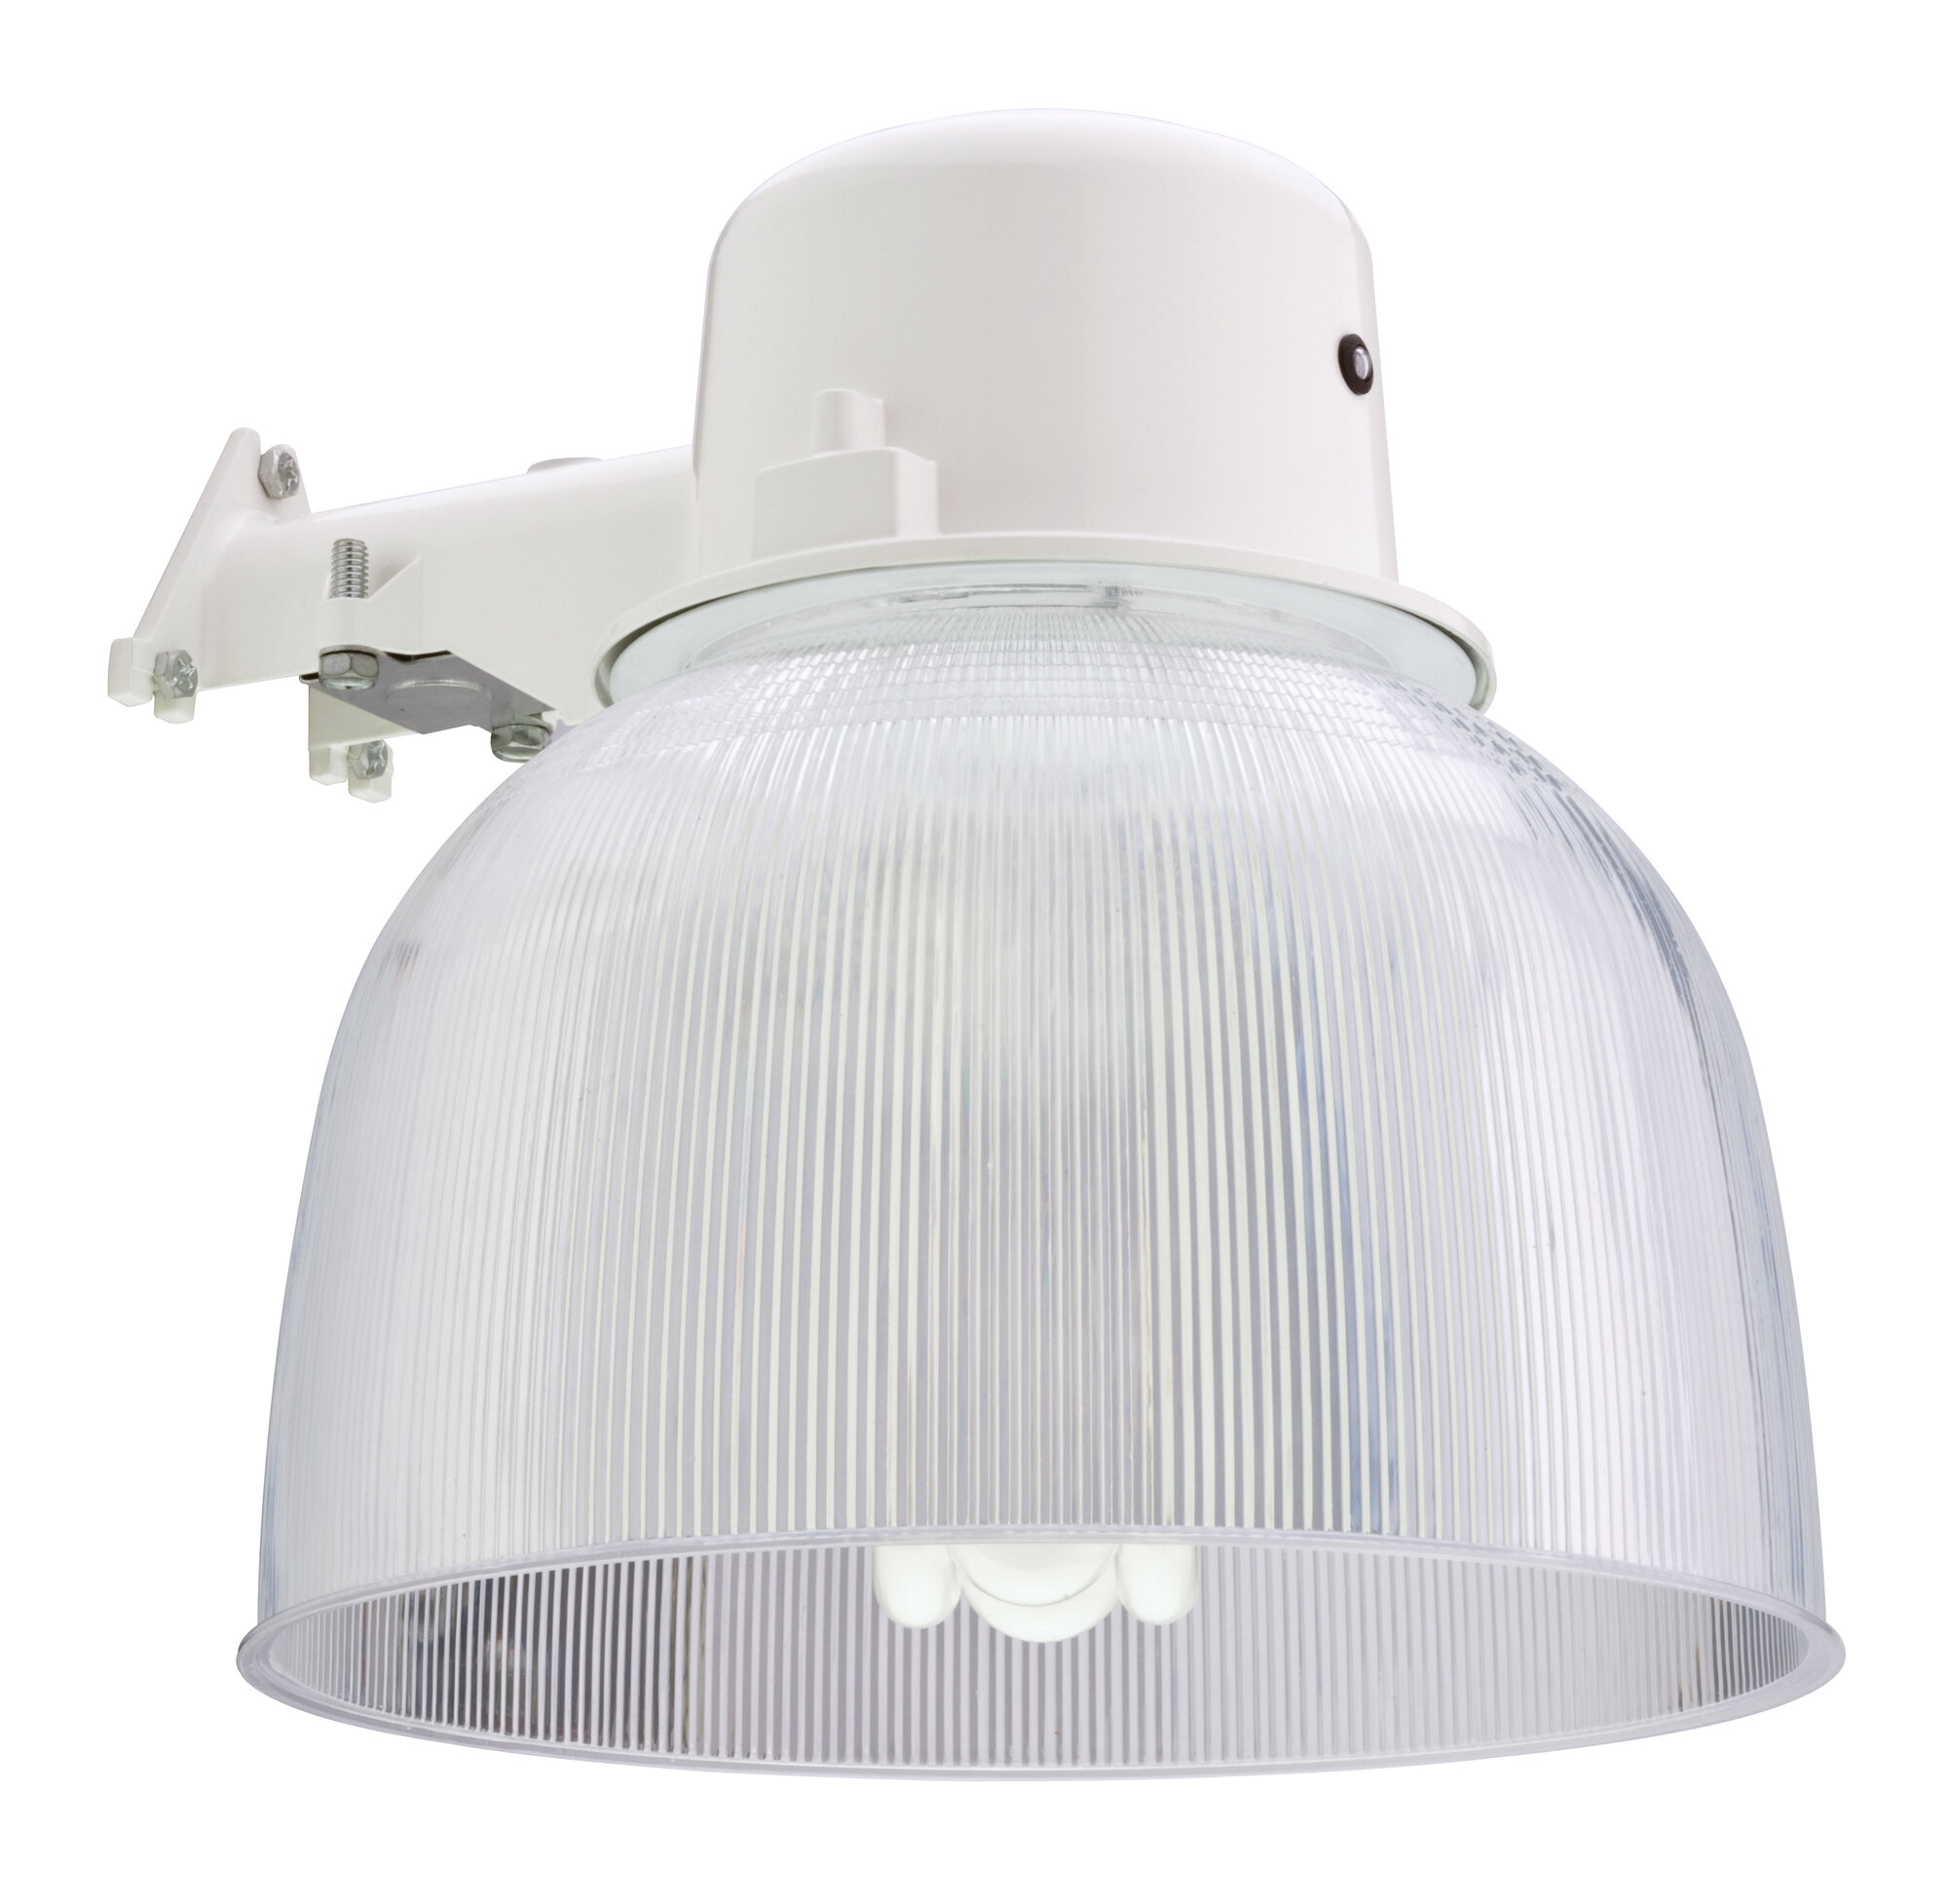 Lithonia Outdoor Security Lighting: Lithonia Lighting 1-Light Outdoor Sconce